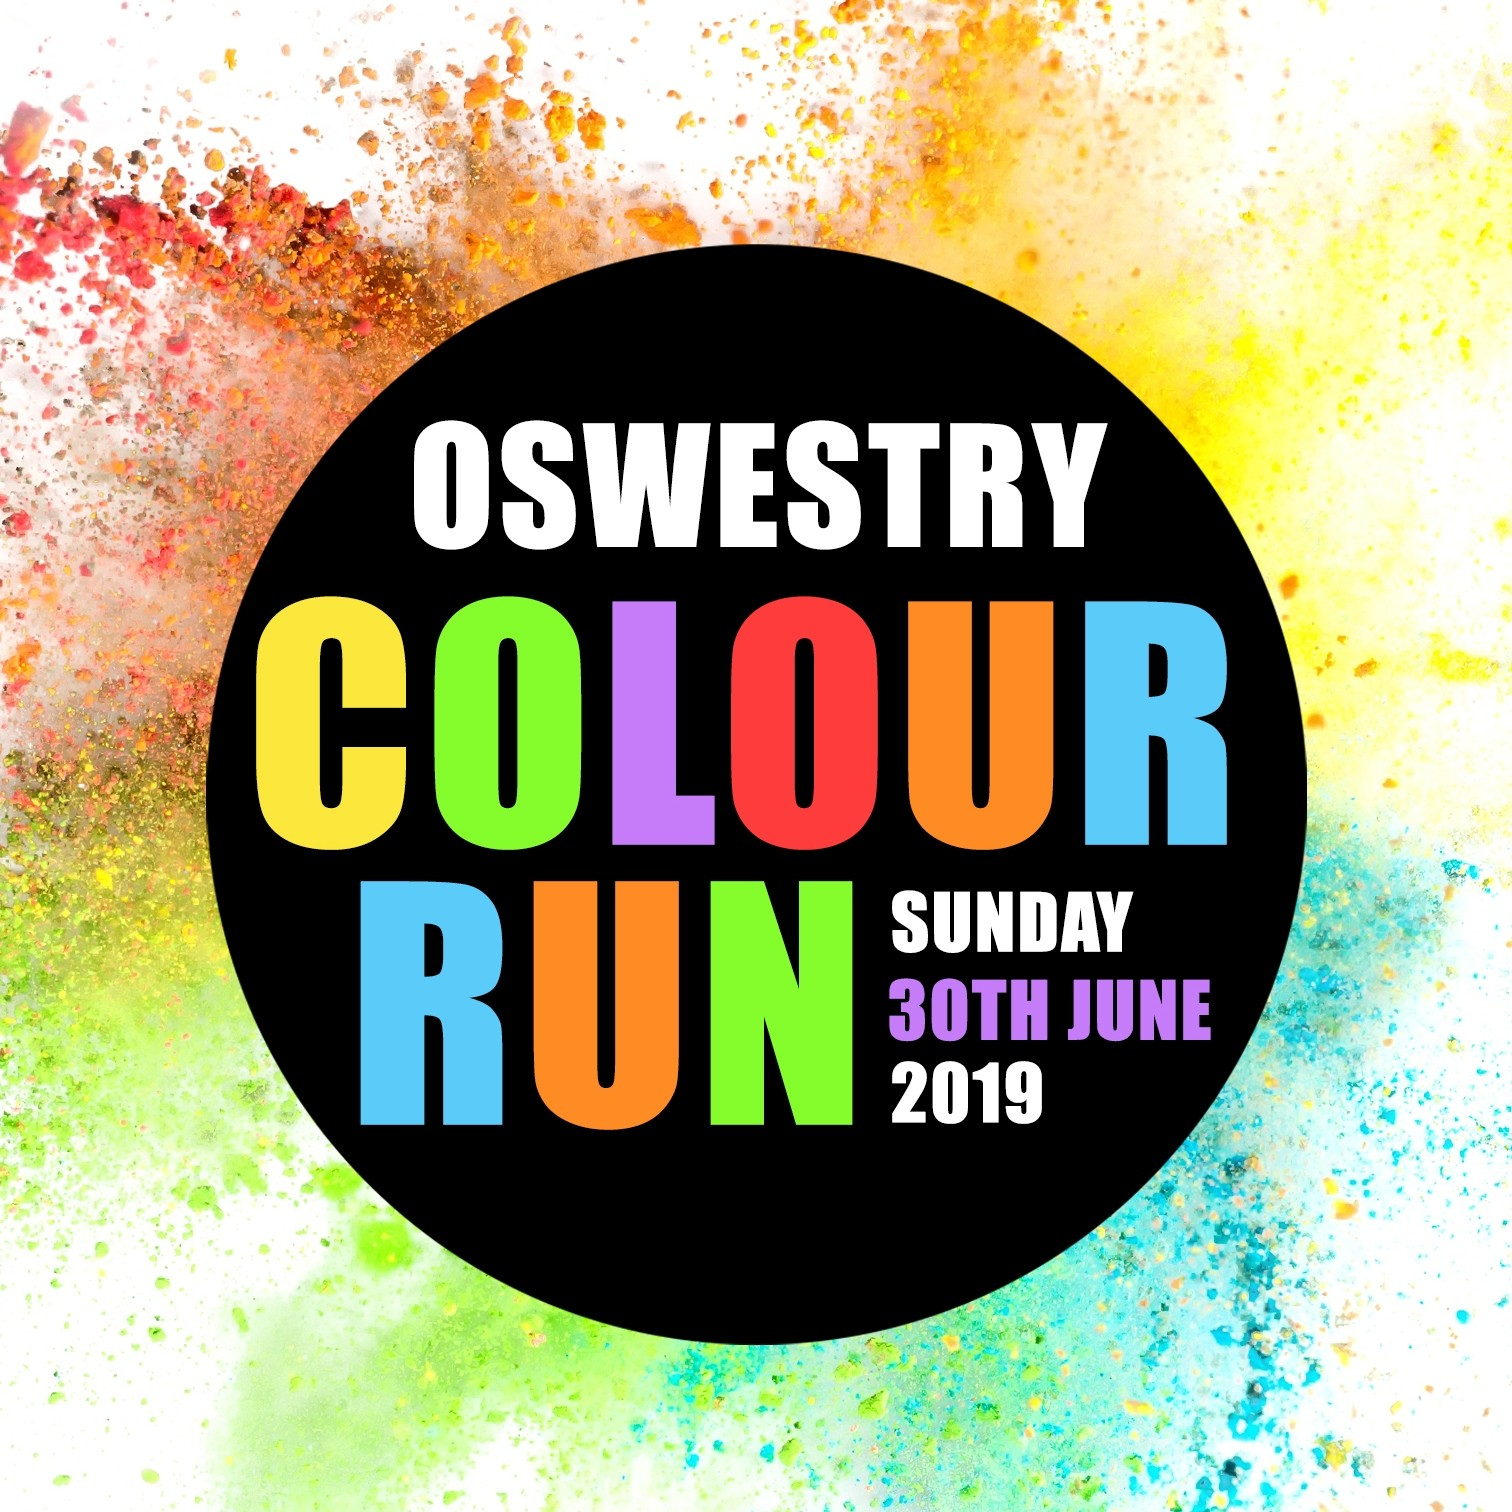 Oswestry Colour Run 2019